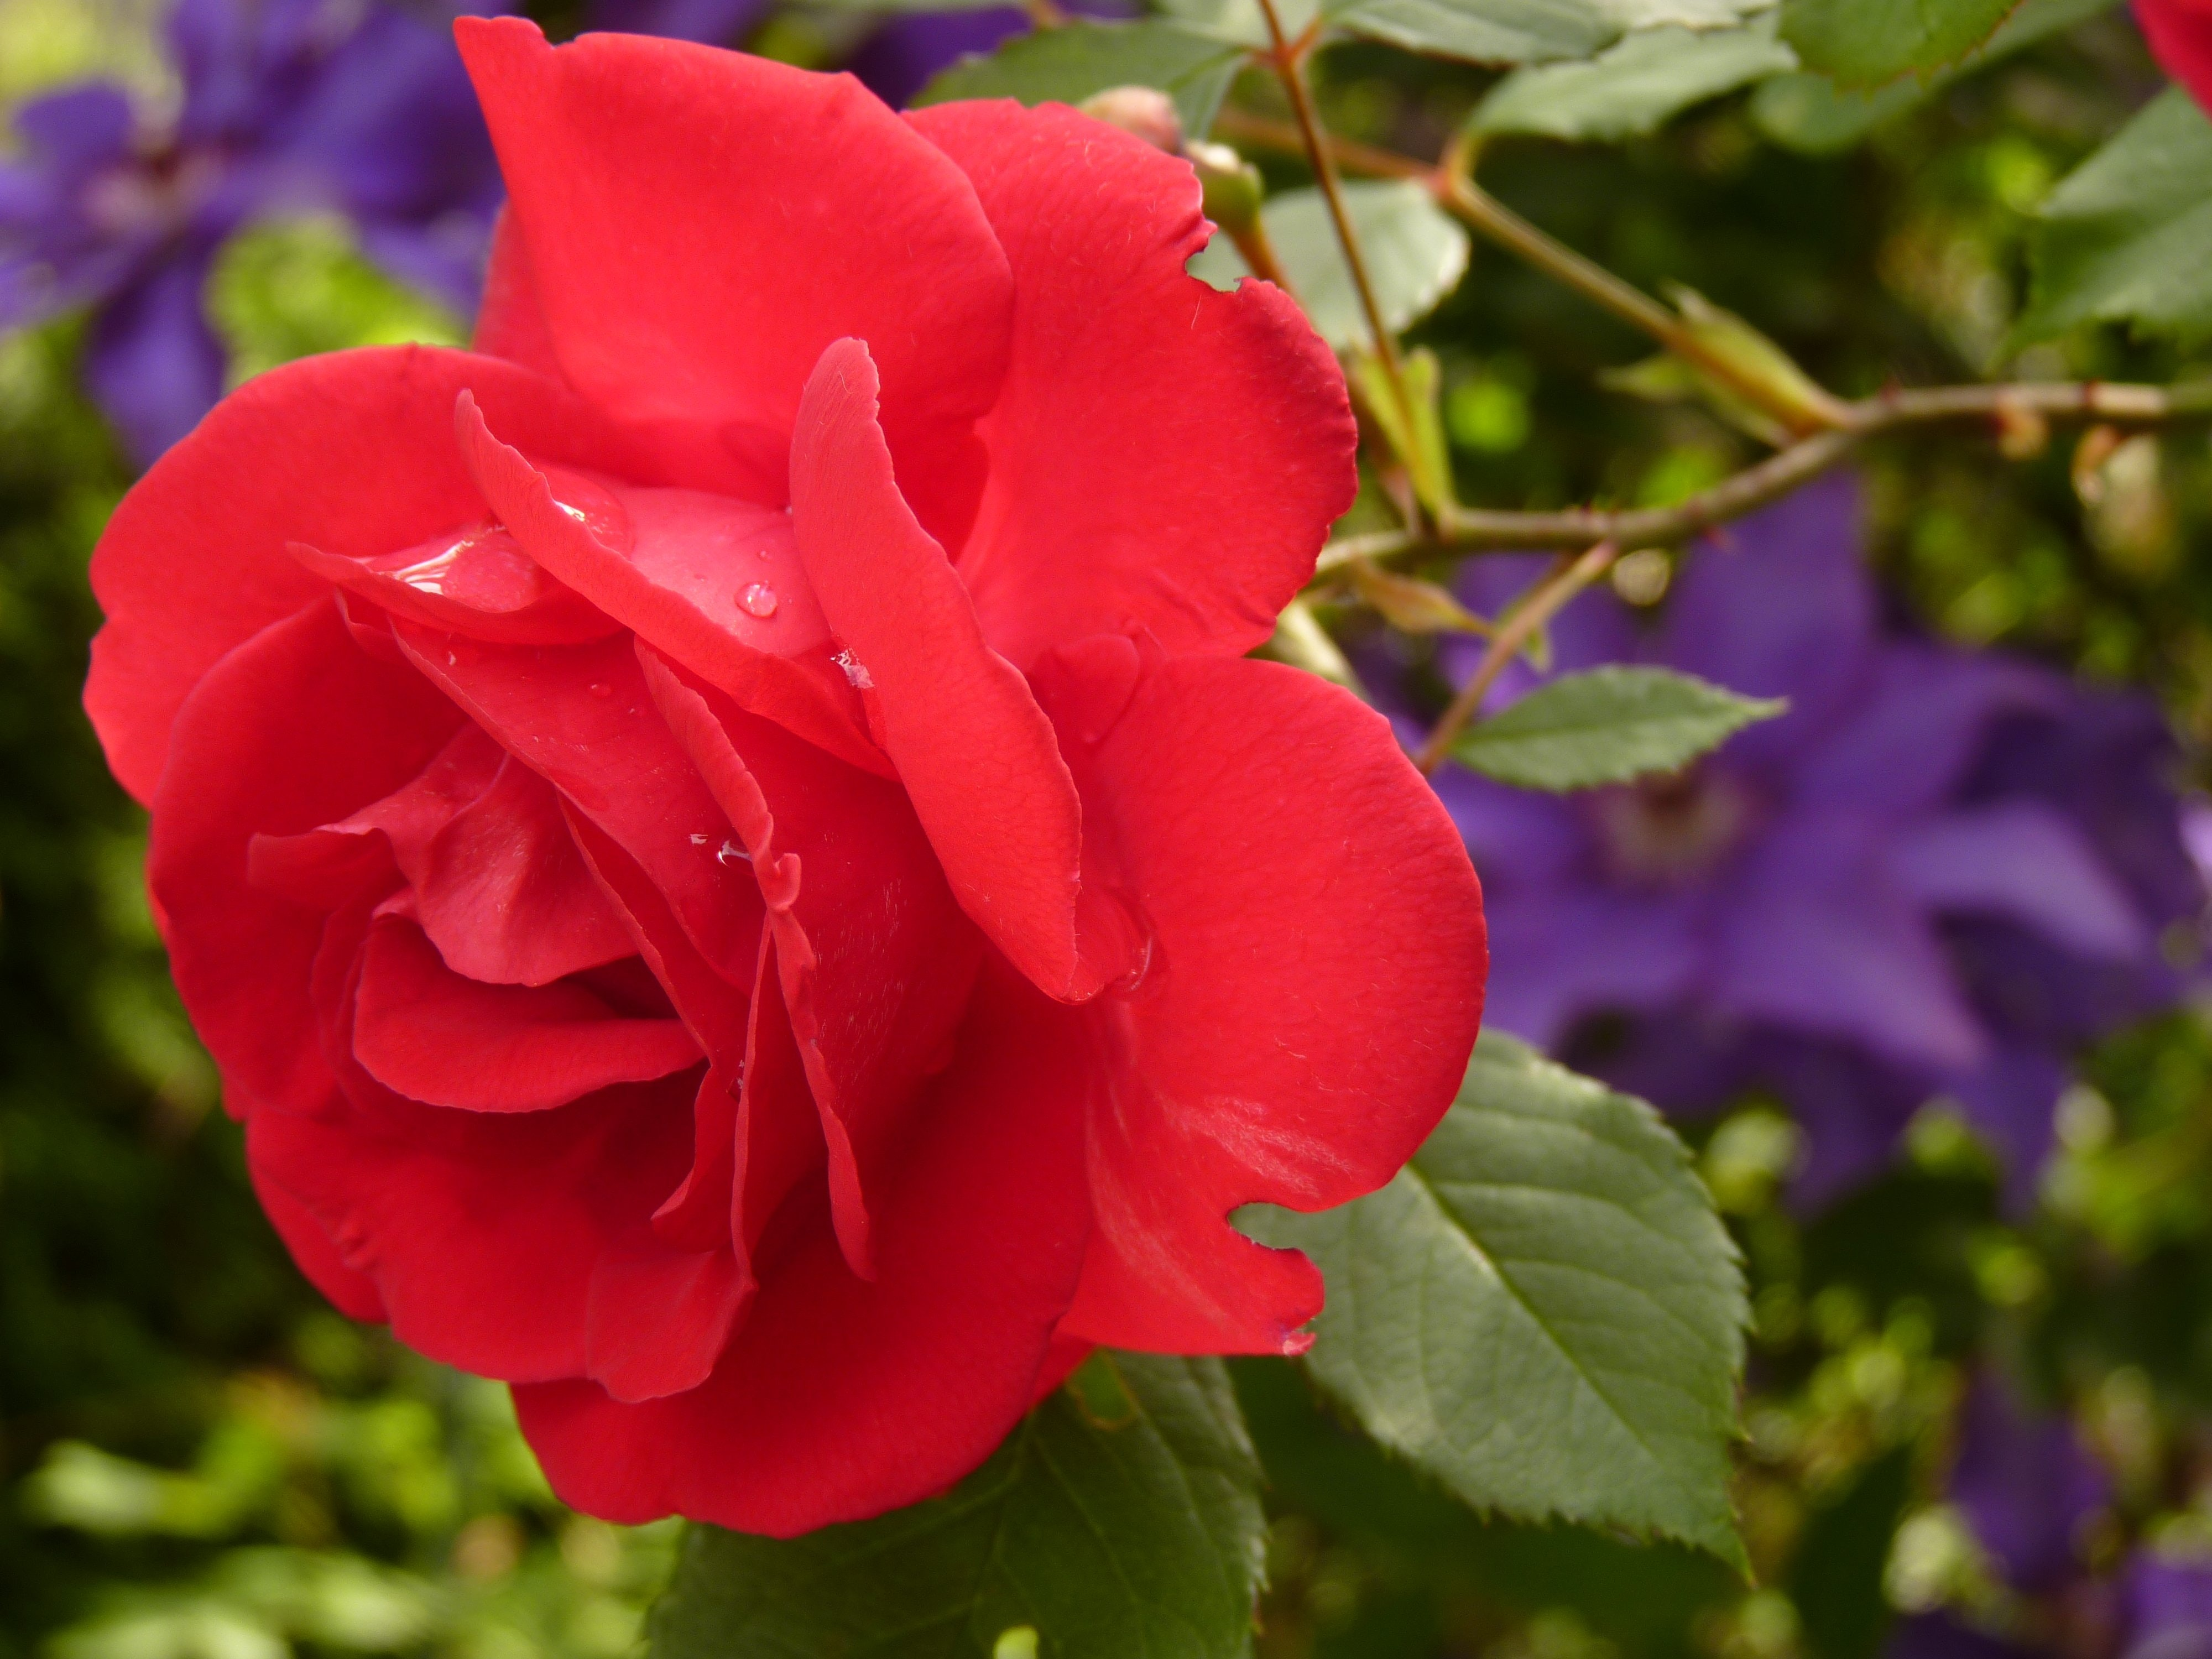 Close Up Photo Of Red Rose Free Stock Photo